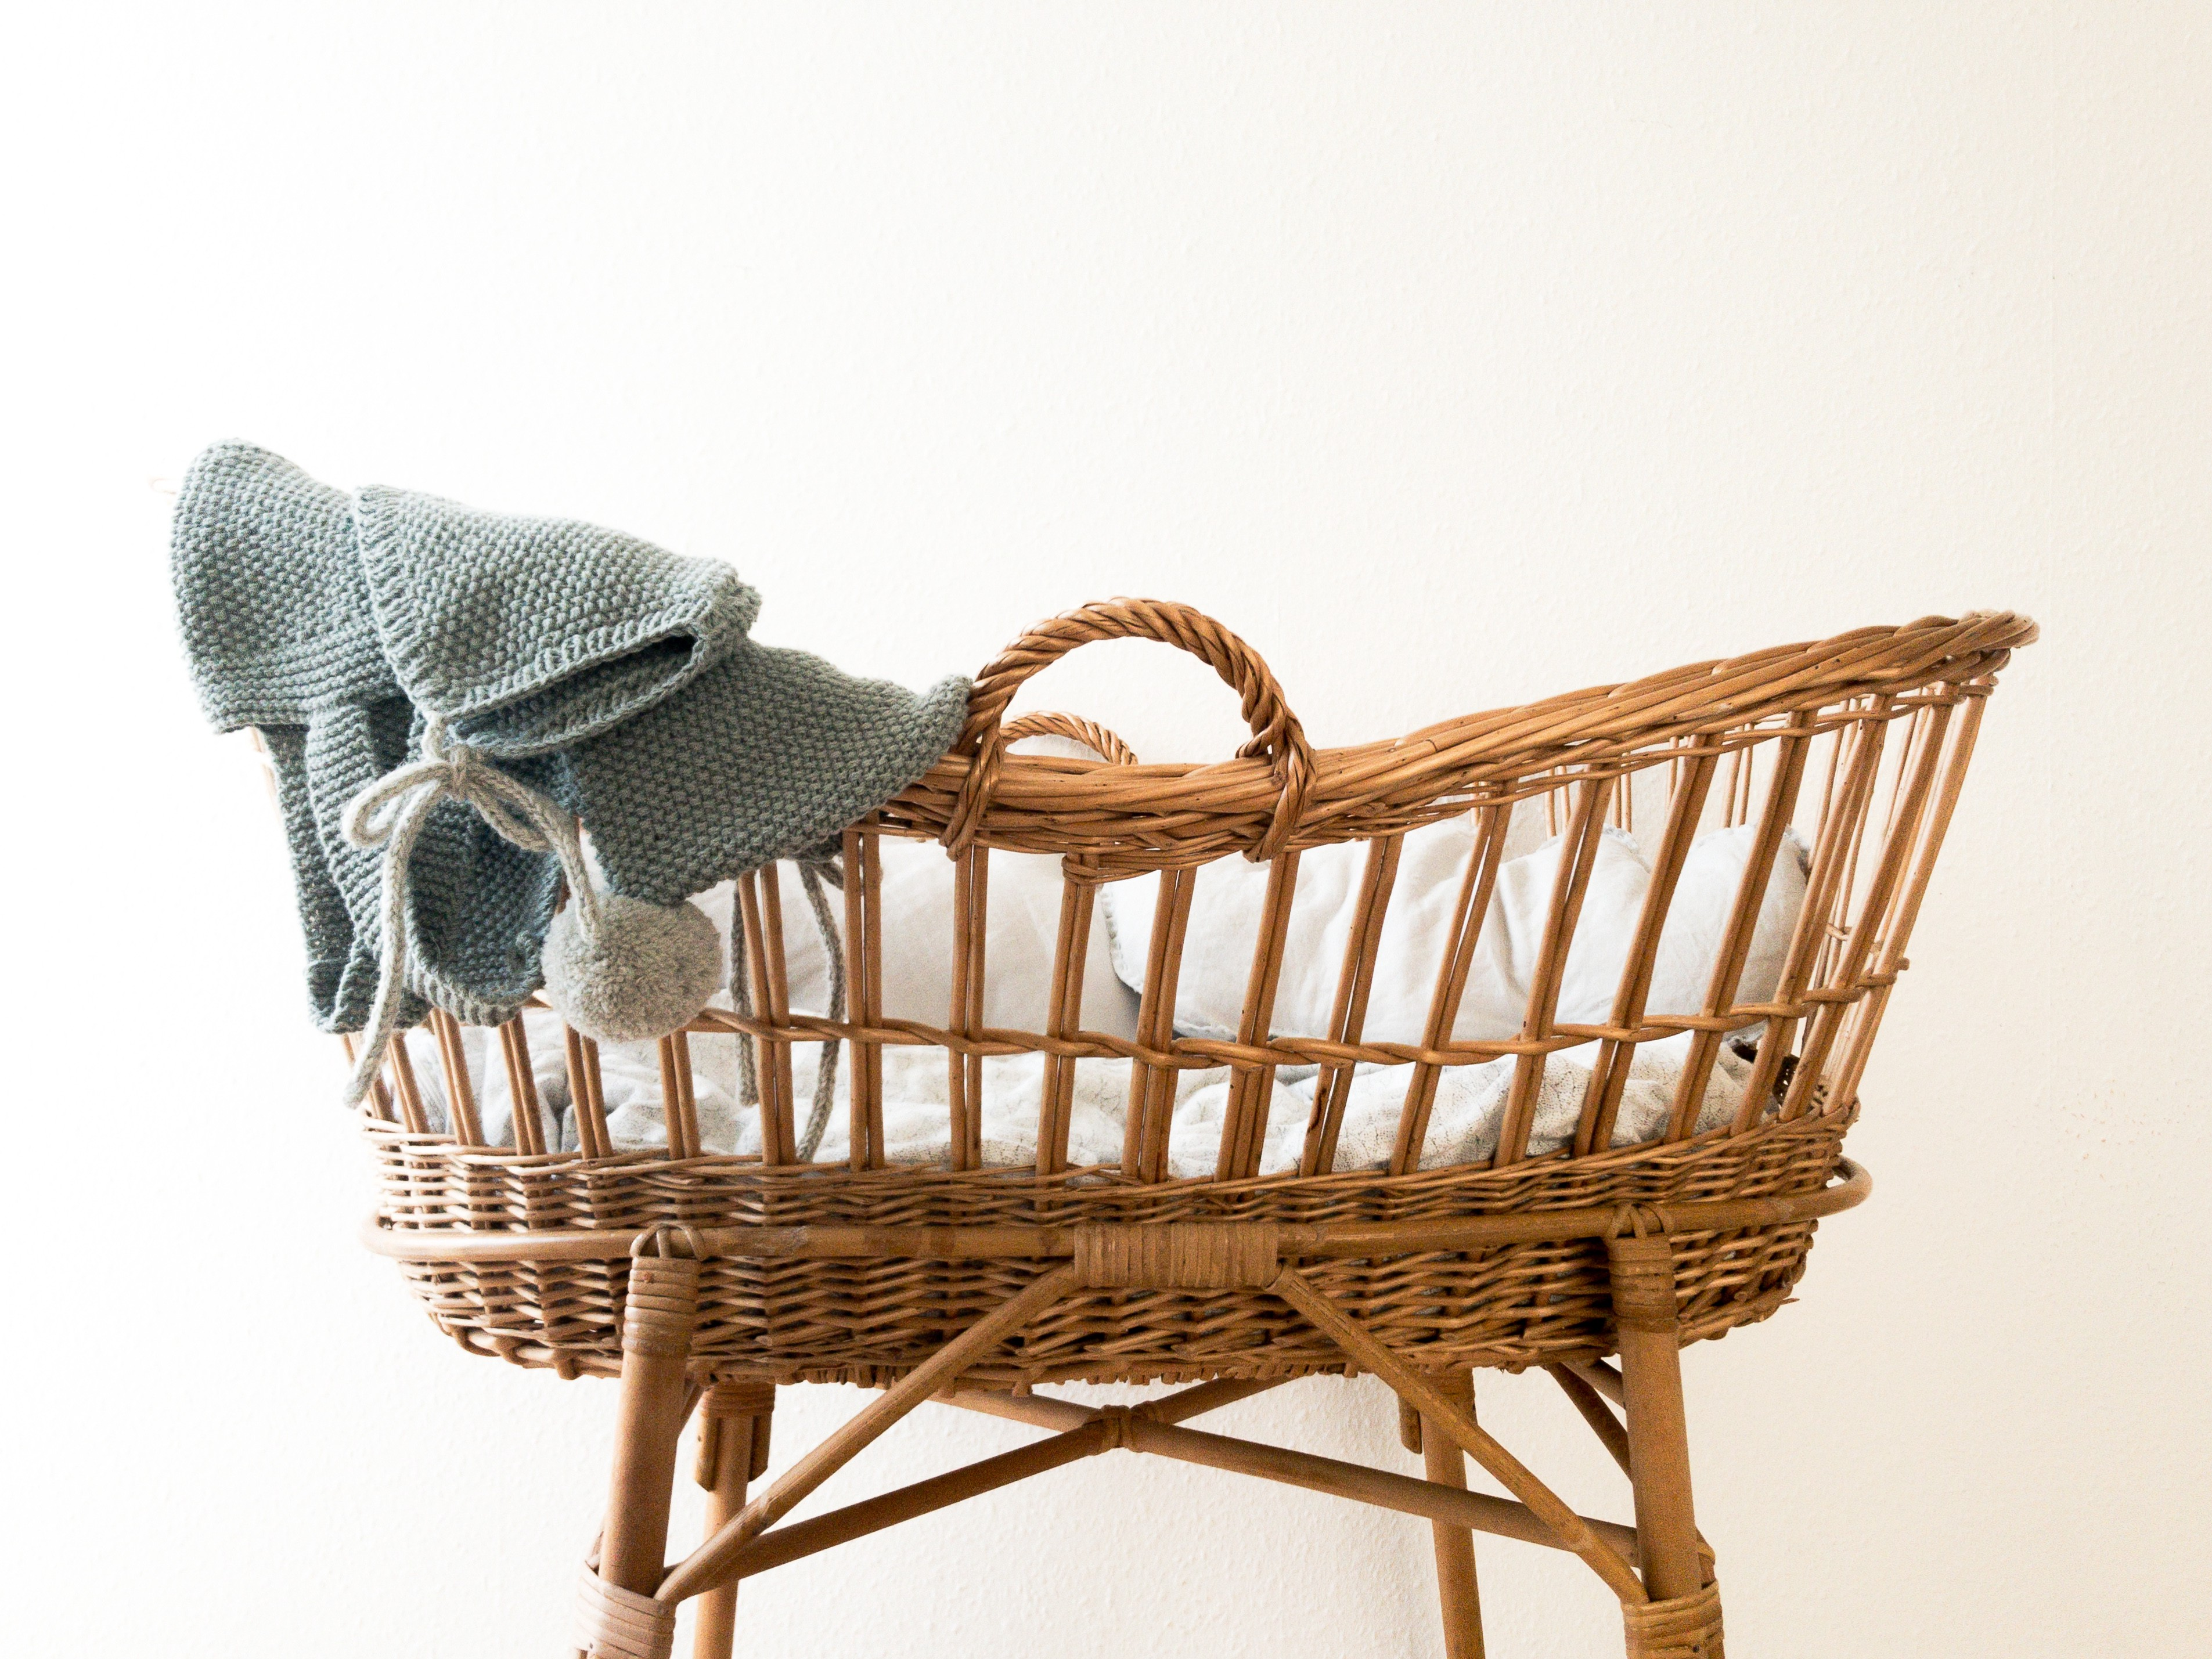 A woven bassinet/moses basket with white bedding and a grey knit baby jacket draped on one end.